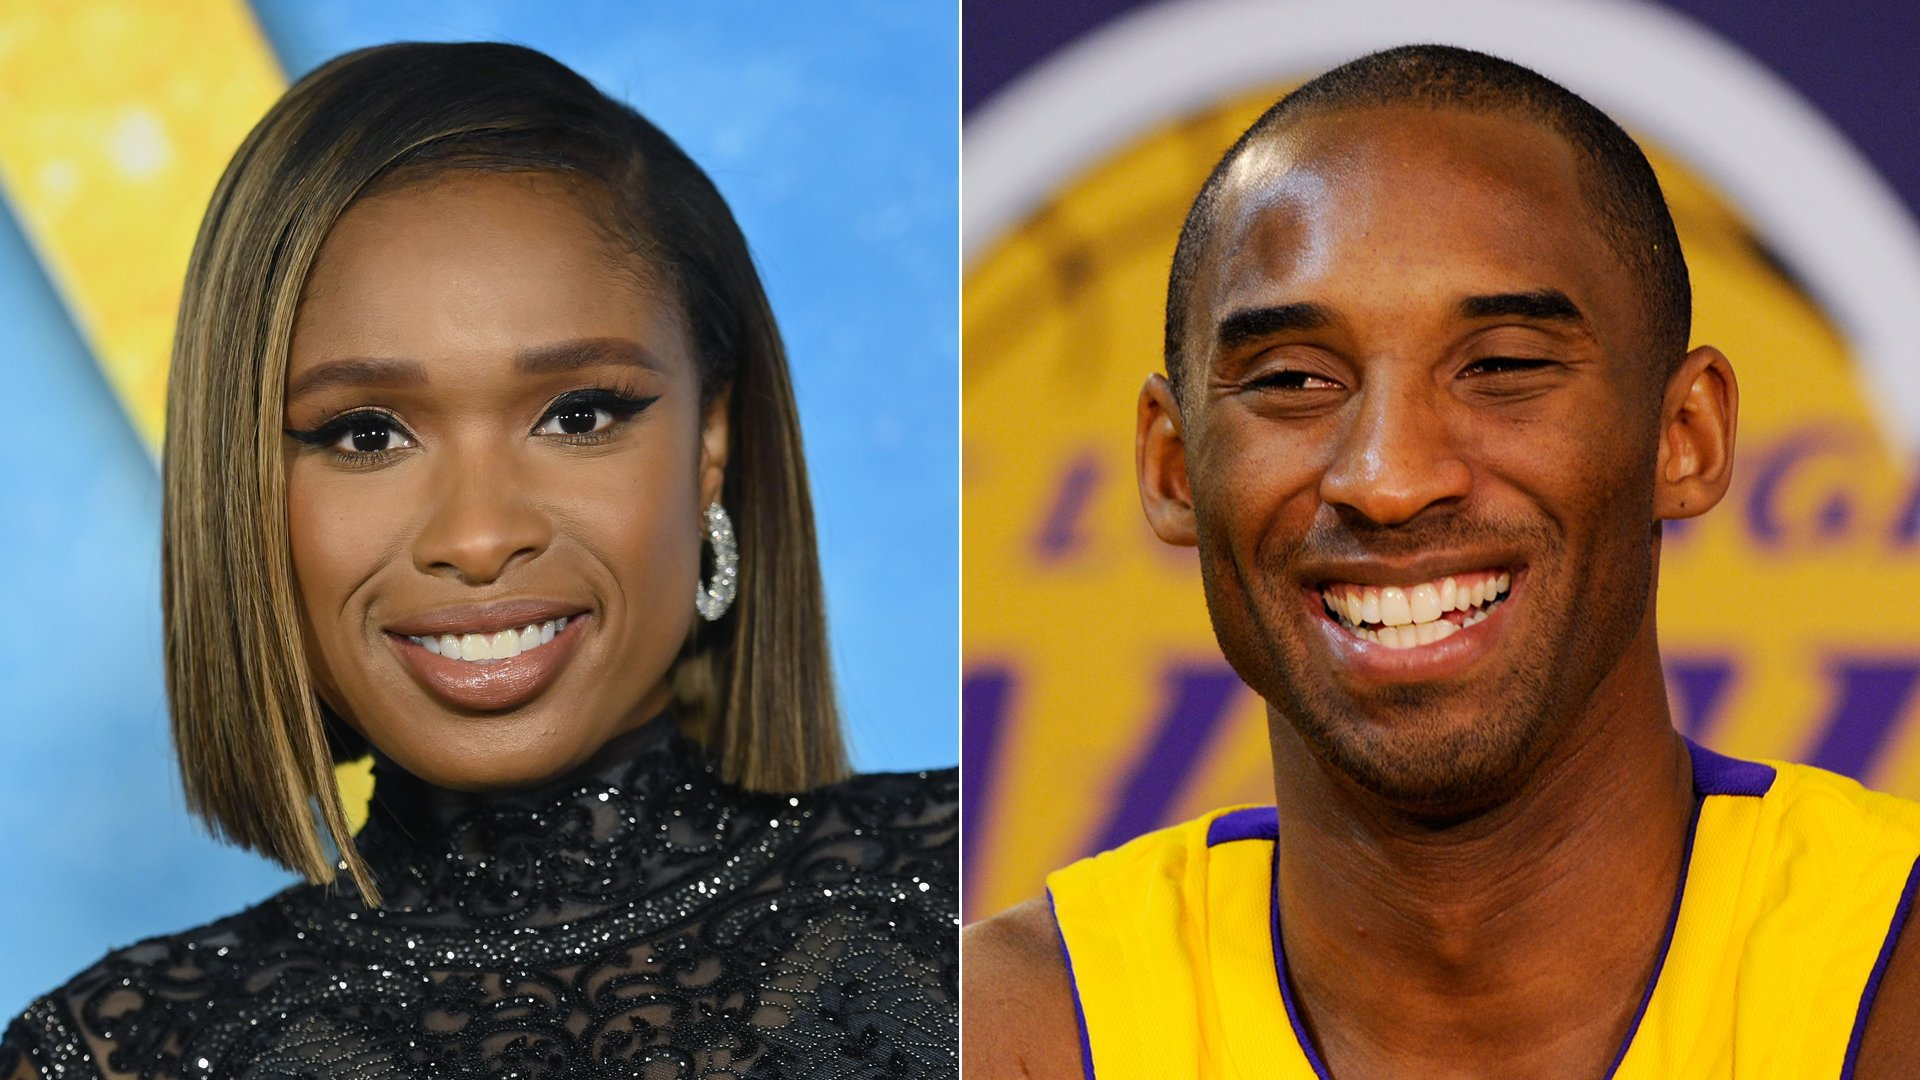 "Singer Jennifer Hudson, left, arrives for the premiere of ""Cats"" in New York City on Dec. 16, 2019. At right, Kobe Bryant smiles during Lakers media day in El Segundo on Sept. 29, 2009. (Credit: Angela Weiss / Kevork Djansezian / AFP / Getty Images)"